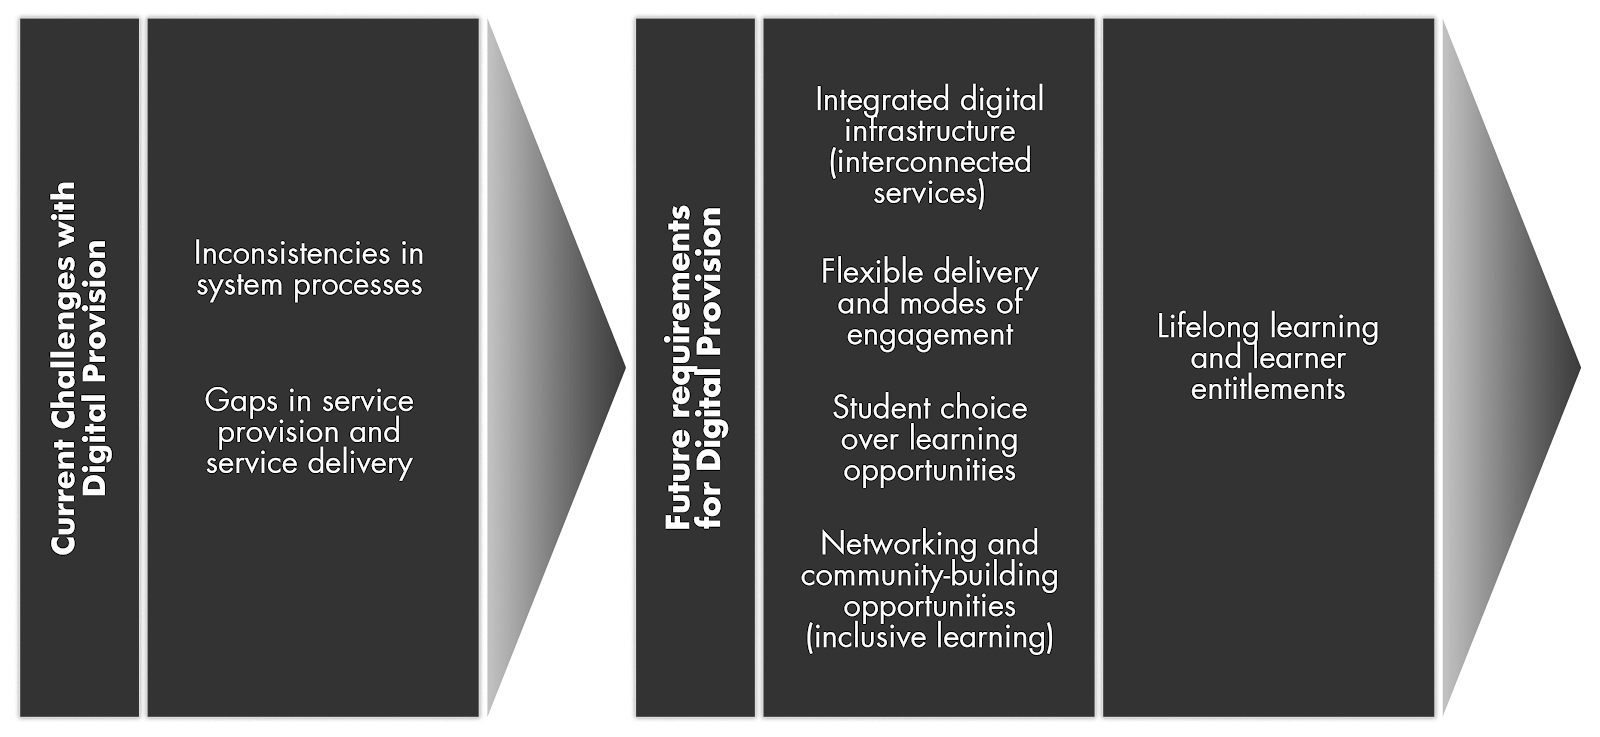 Current challenges in digital provision relate to inconsistencies in system processes and gaps in service provision and service delivery. Future requirements for digital provision include: integrated digital infrastructure; flexible delivery and modes of engagement; student choice over learning methods; rethinking community; and lifelong learning entitlements.